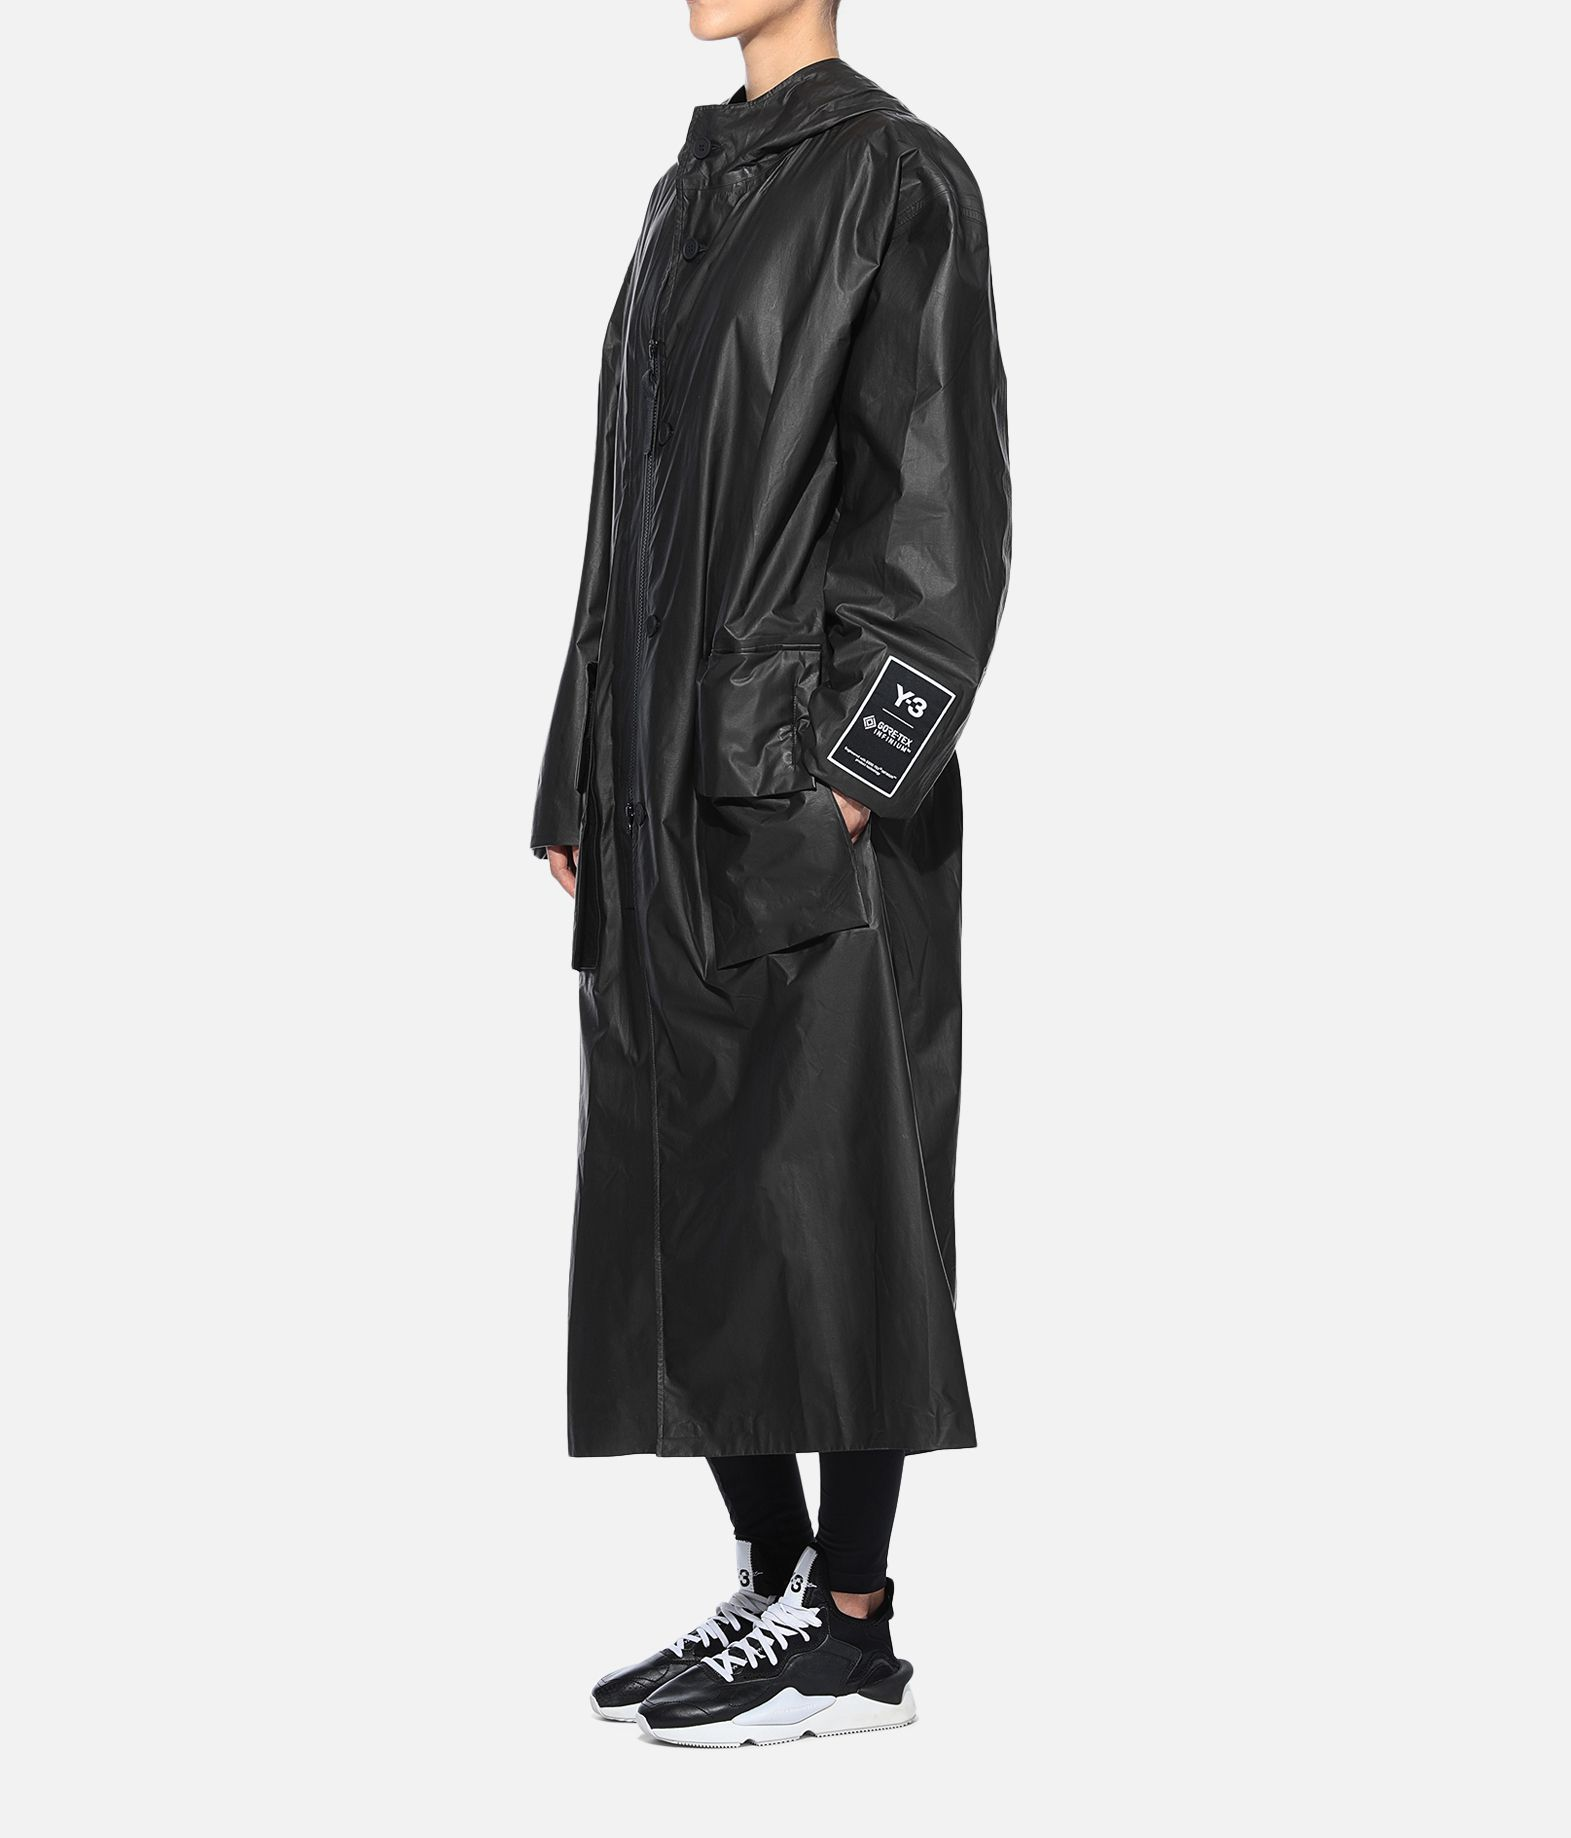 Y-3 Y-3 GORE-TEX Long Coat Full-length jacket Woman e